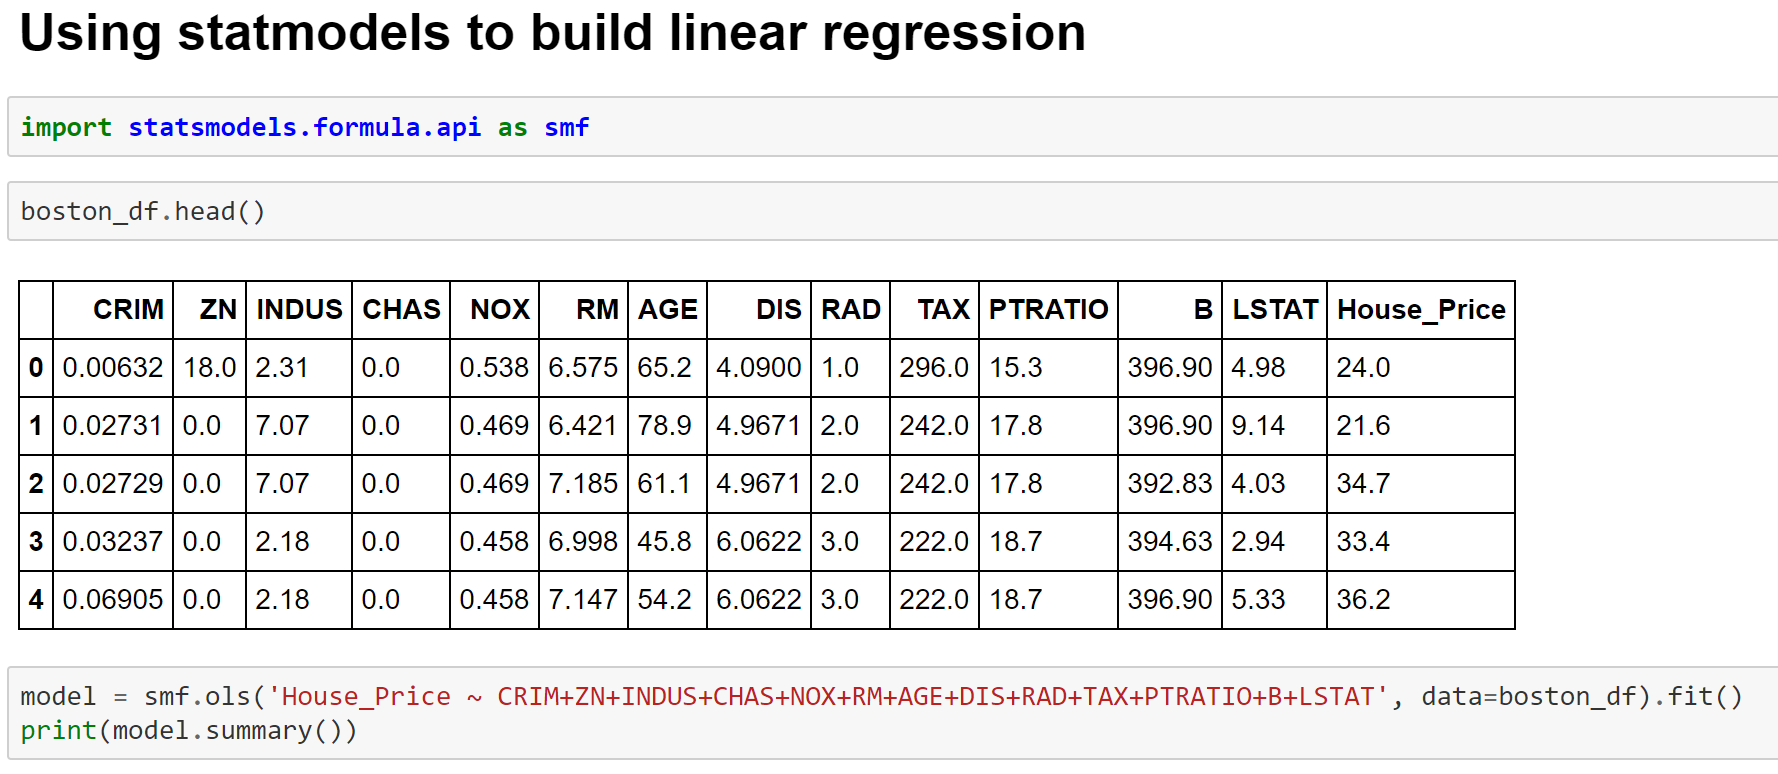 Fitting Linear Regression Model using Statmodels